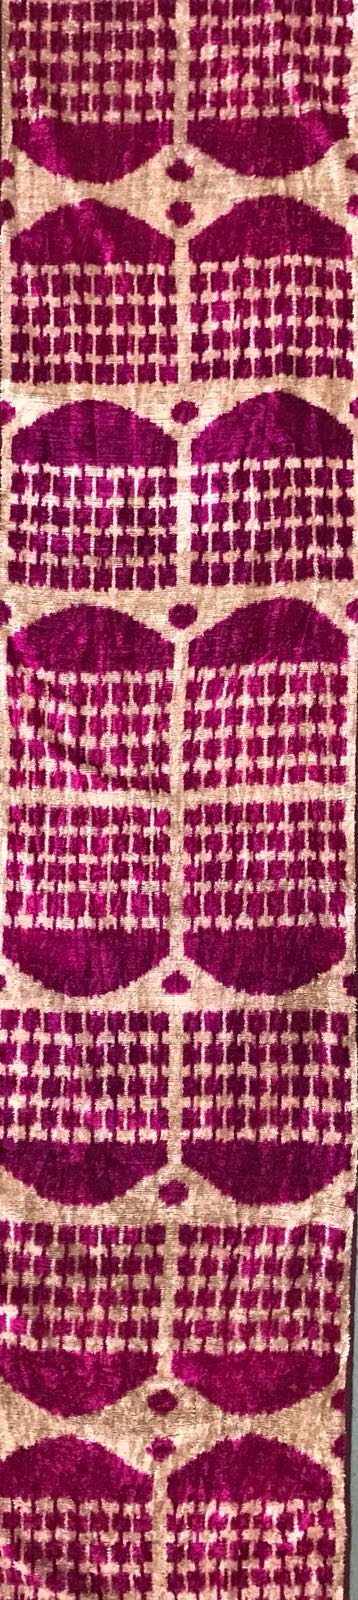 PLUM TEMPLE - IKAT SILK/VELVET FABRIC